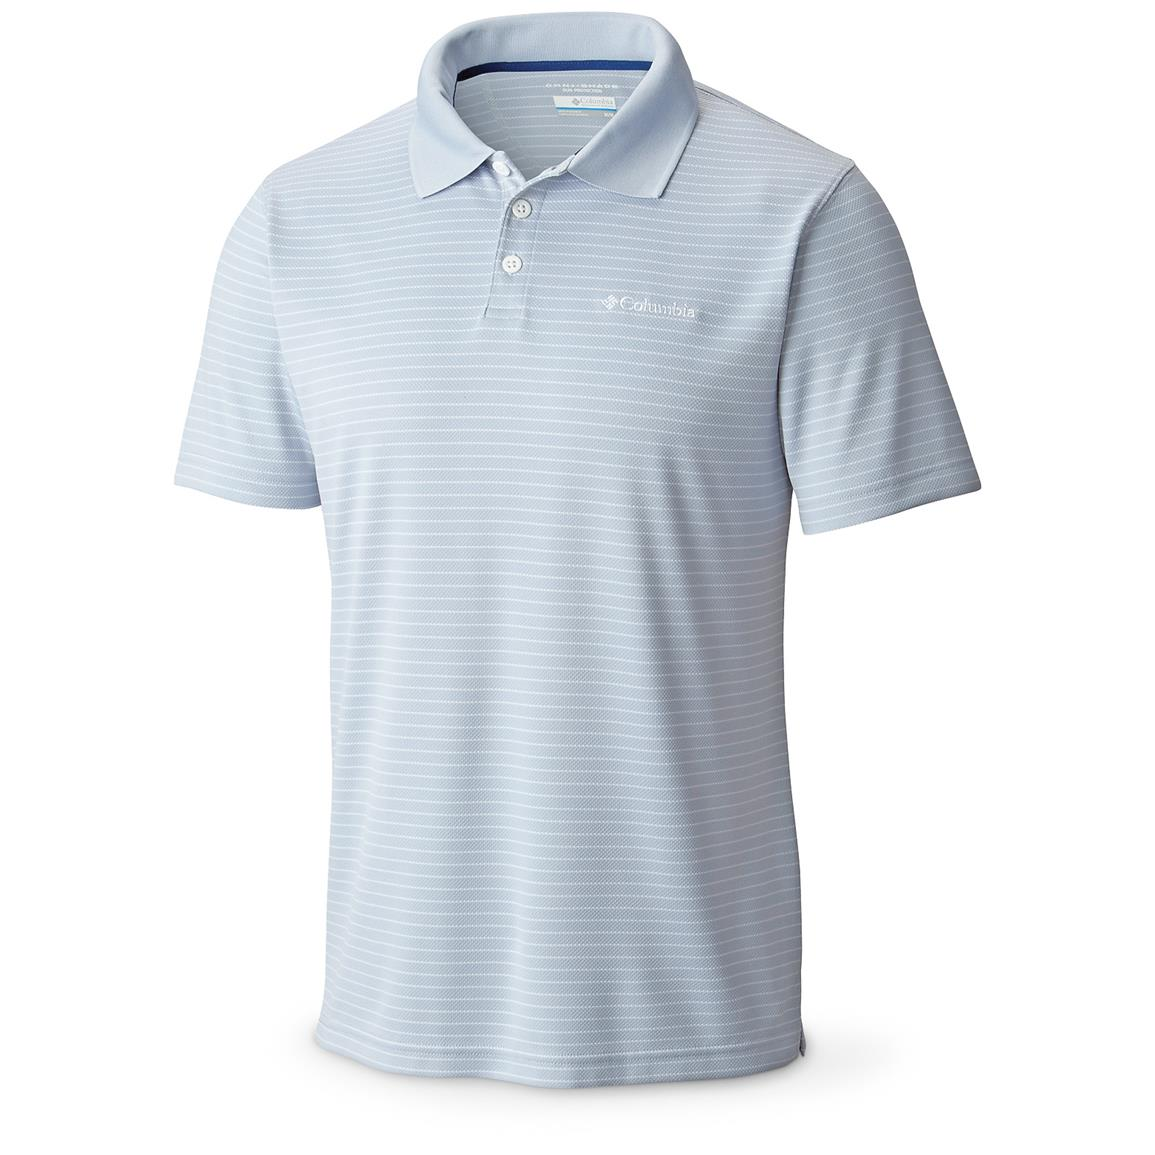 Columbia Men's Sportswear Utilizer Stripe Polo III Shirt, Cirrus Grey